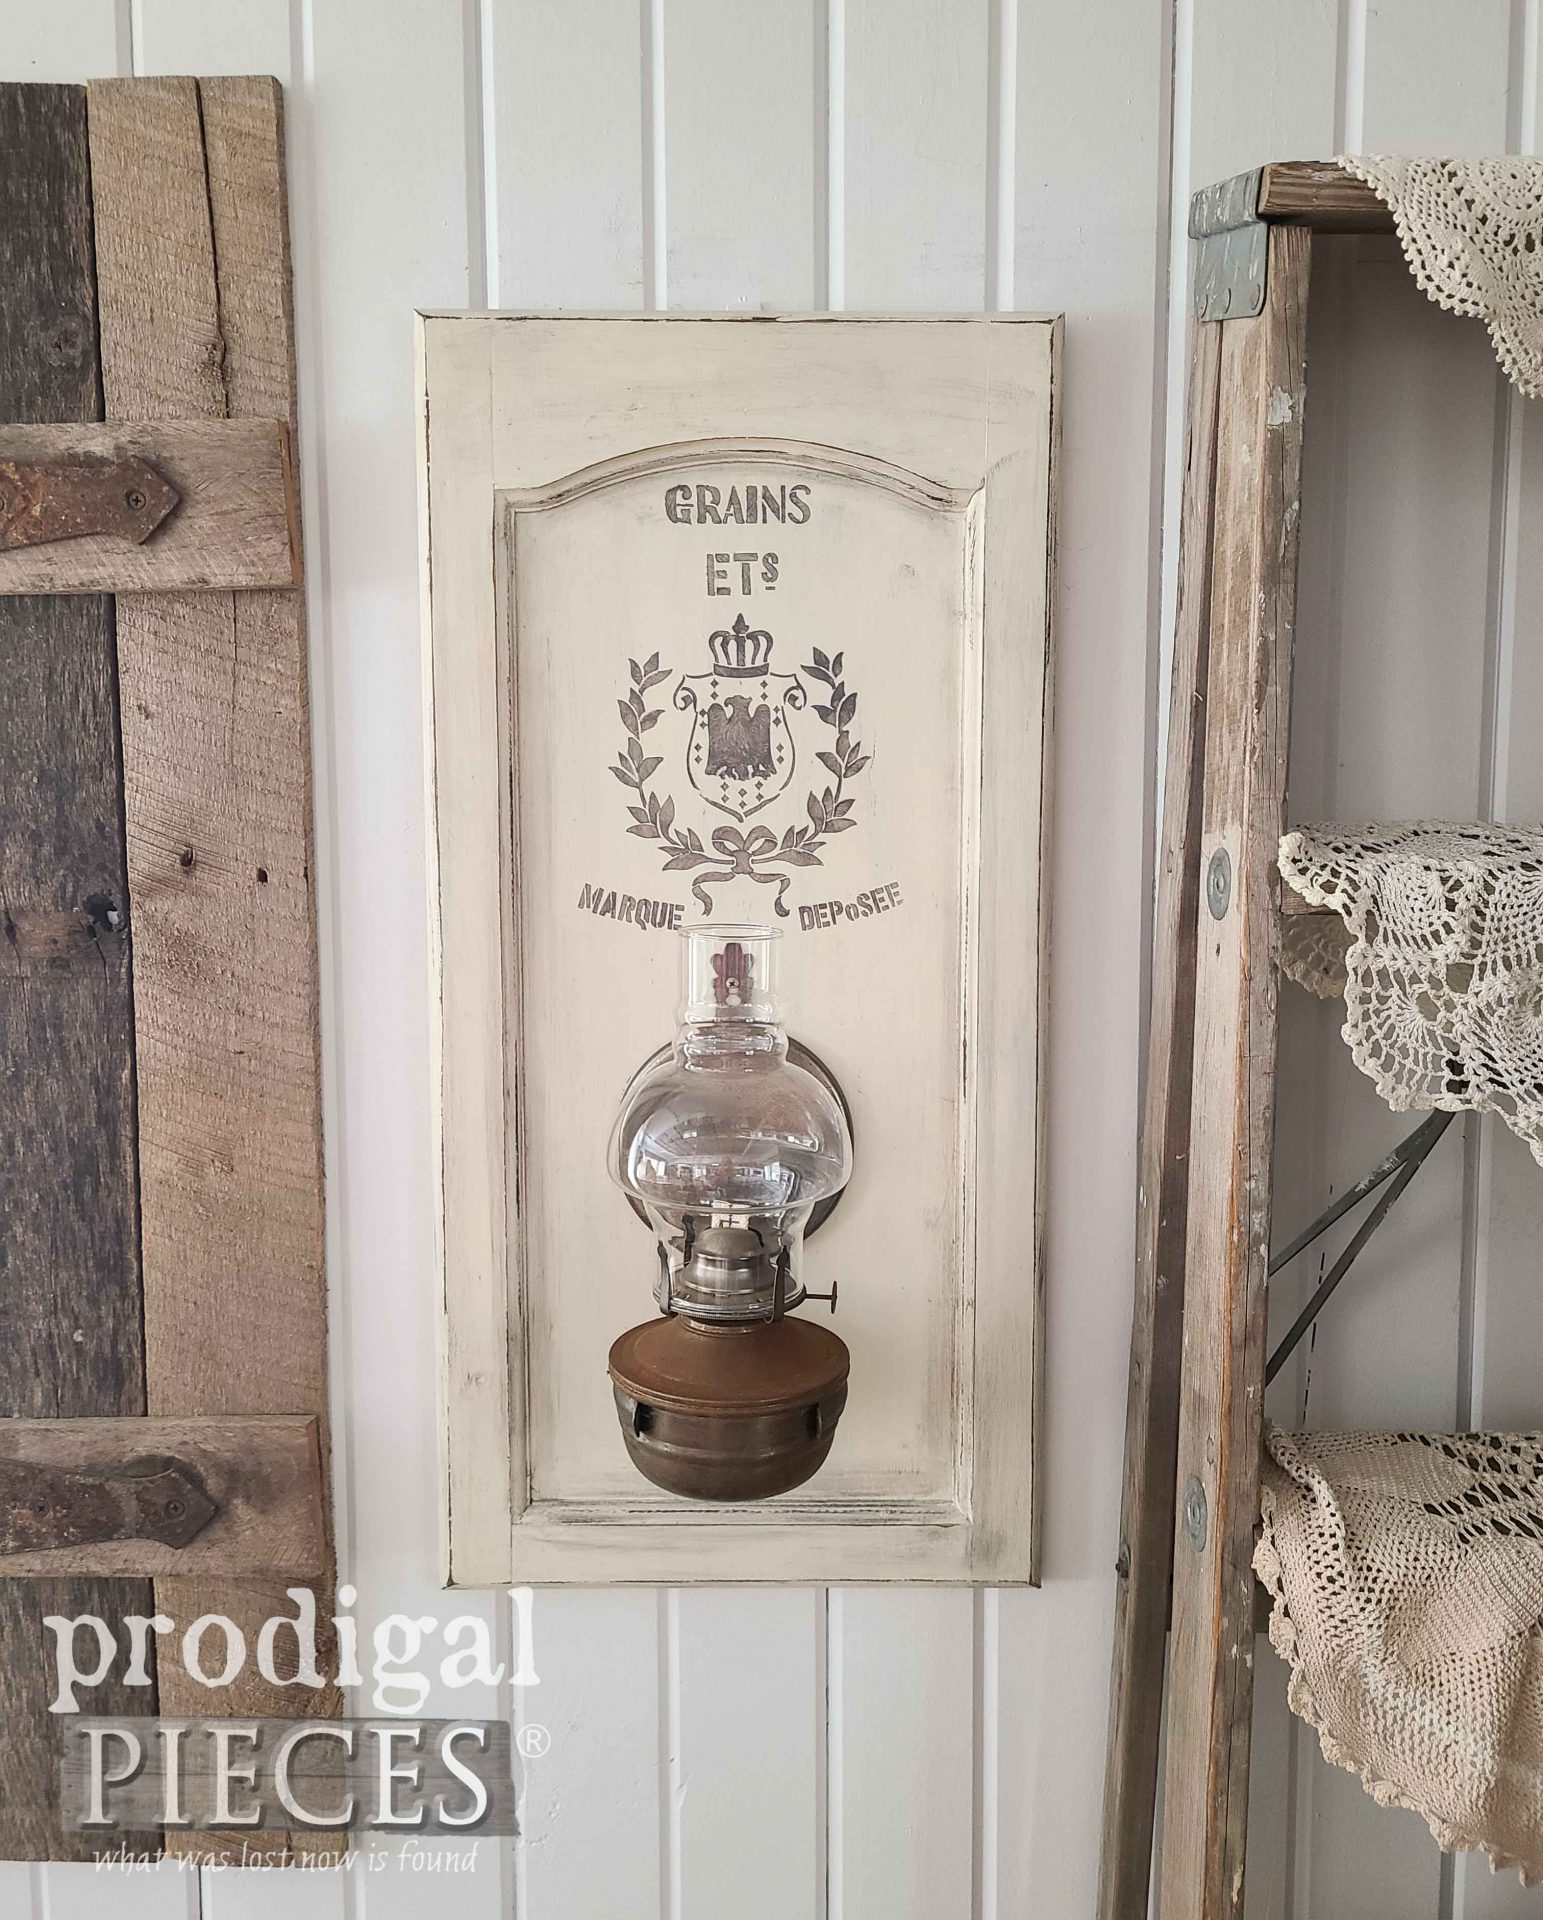 Rustic Chic Farmhouse Oil Lamp by Larissa of Prodigal Pieces | prodigalpieces.com #prodigalpieces #farmhouse #home #homedecor